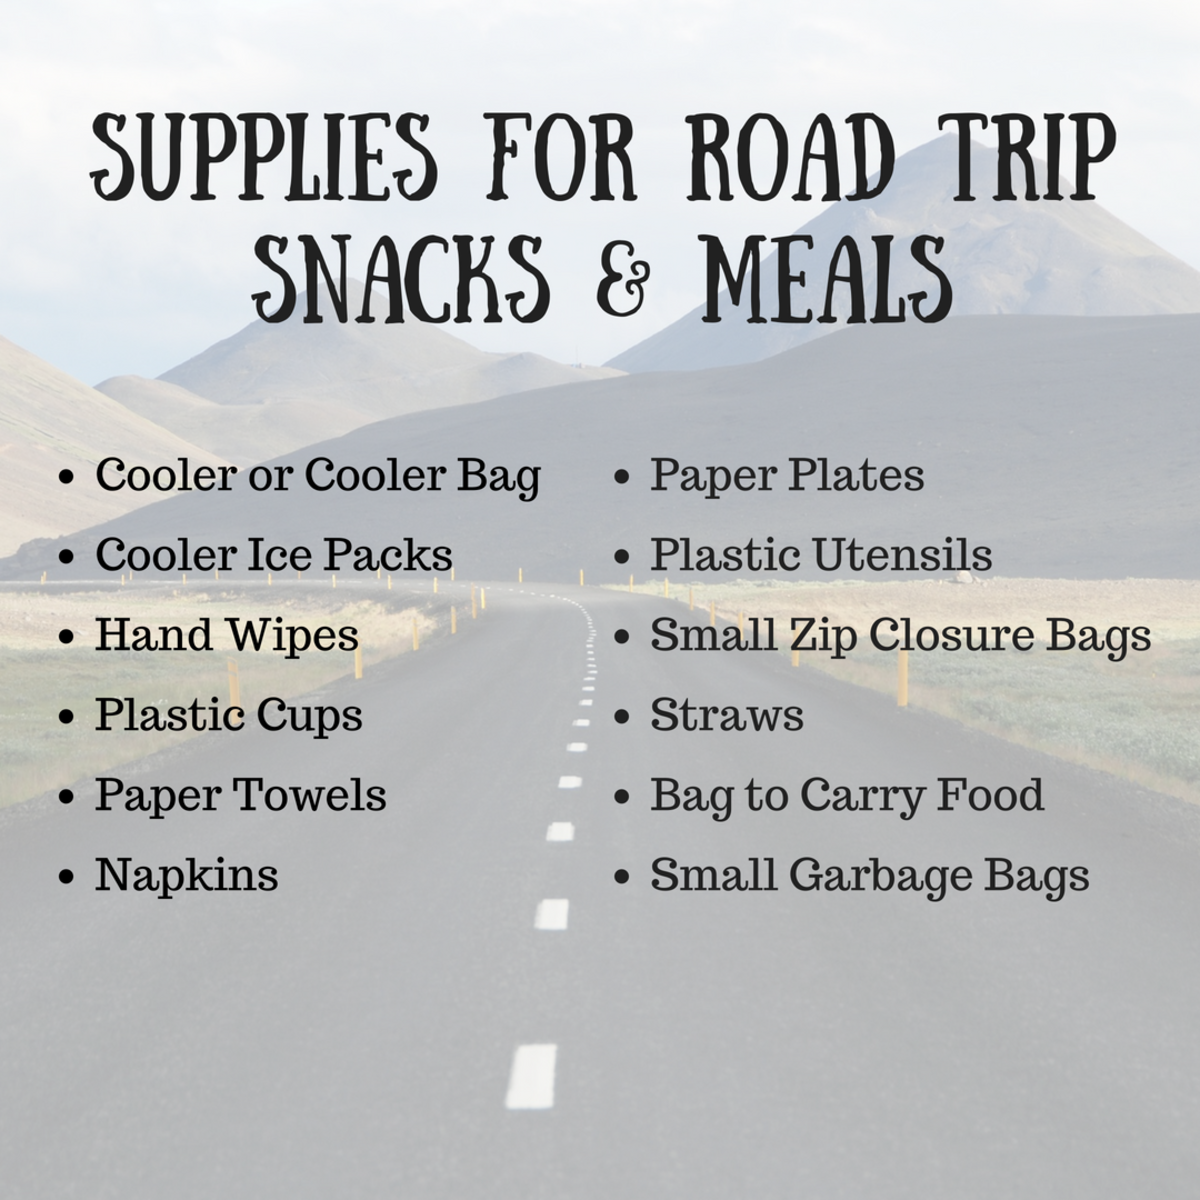 Here are some helpful items to bring for eating on the road.